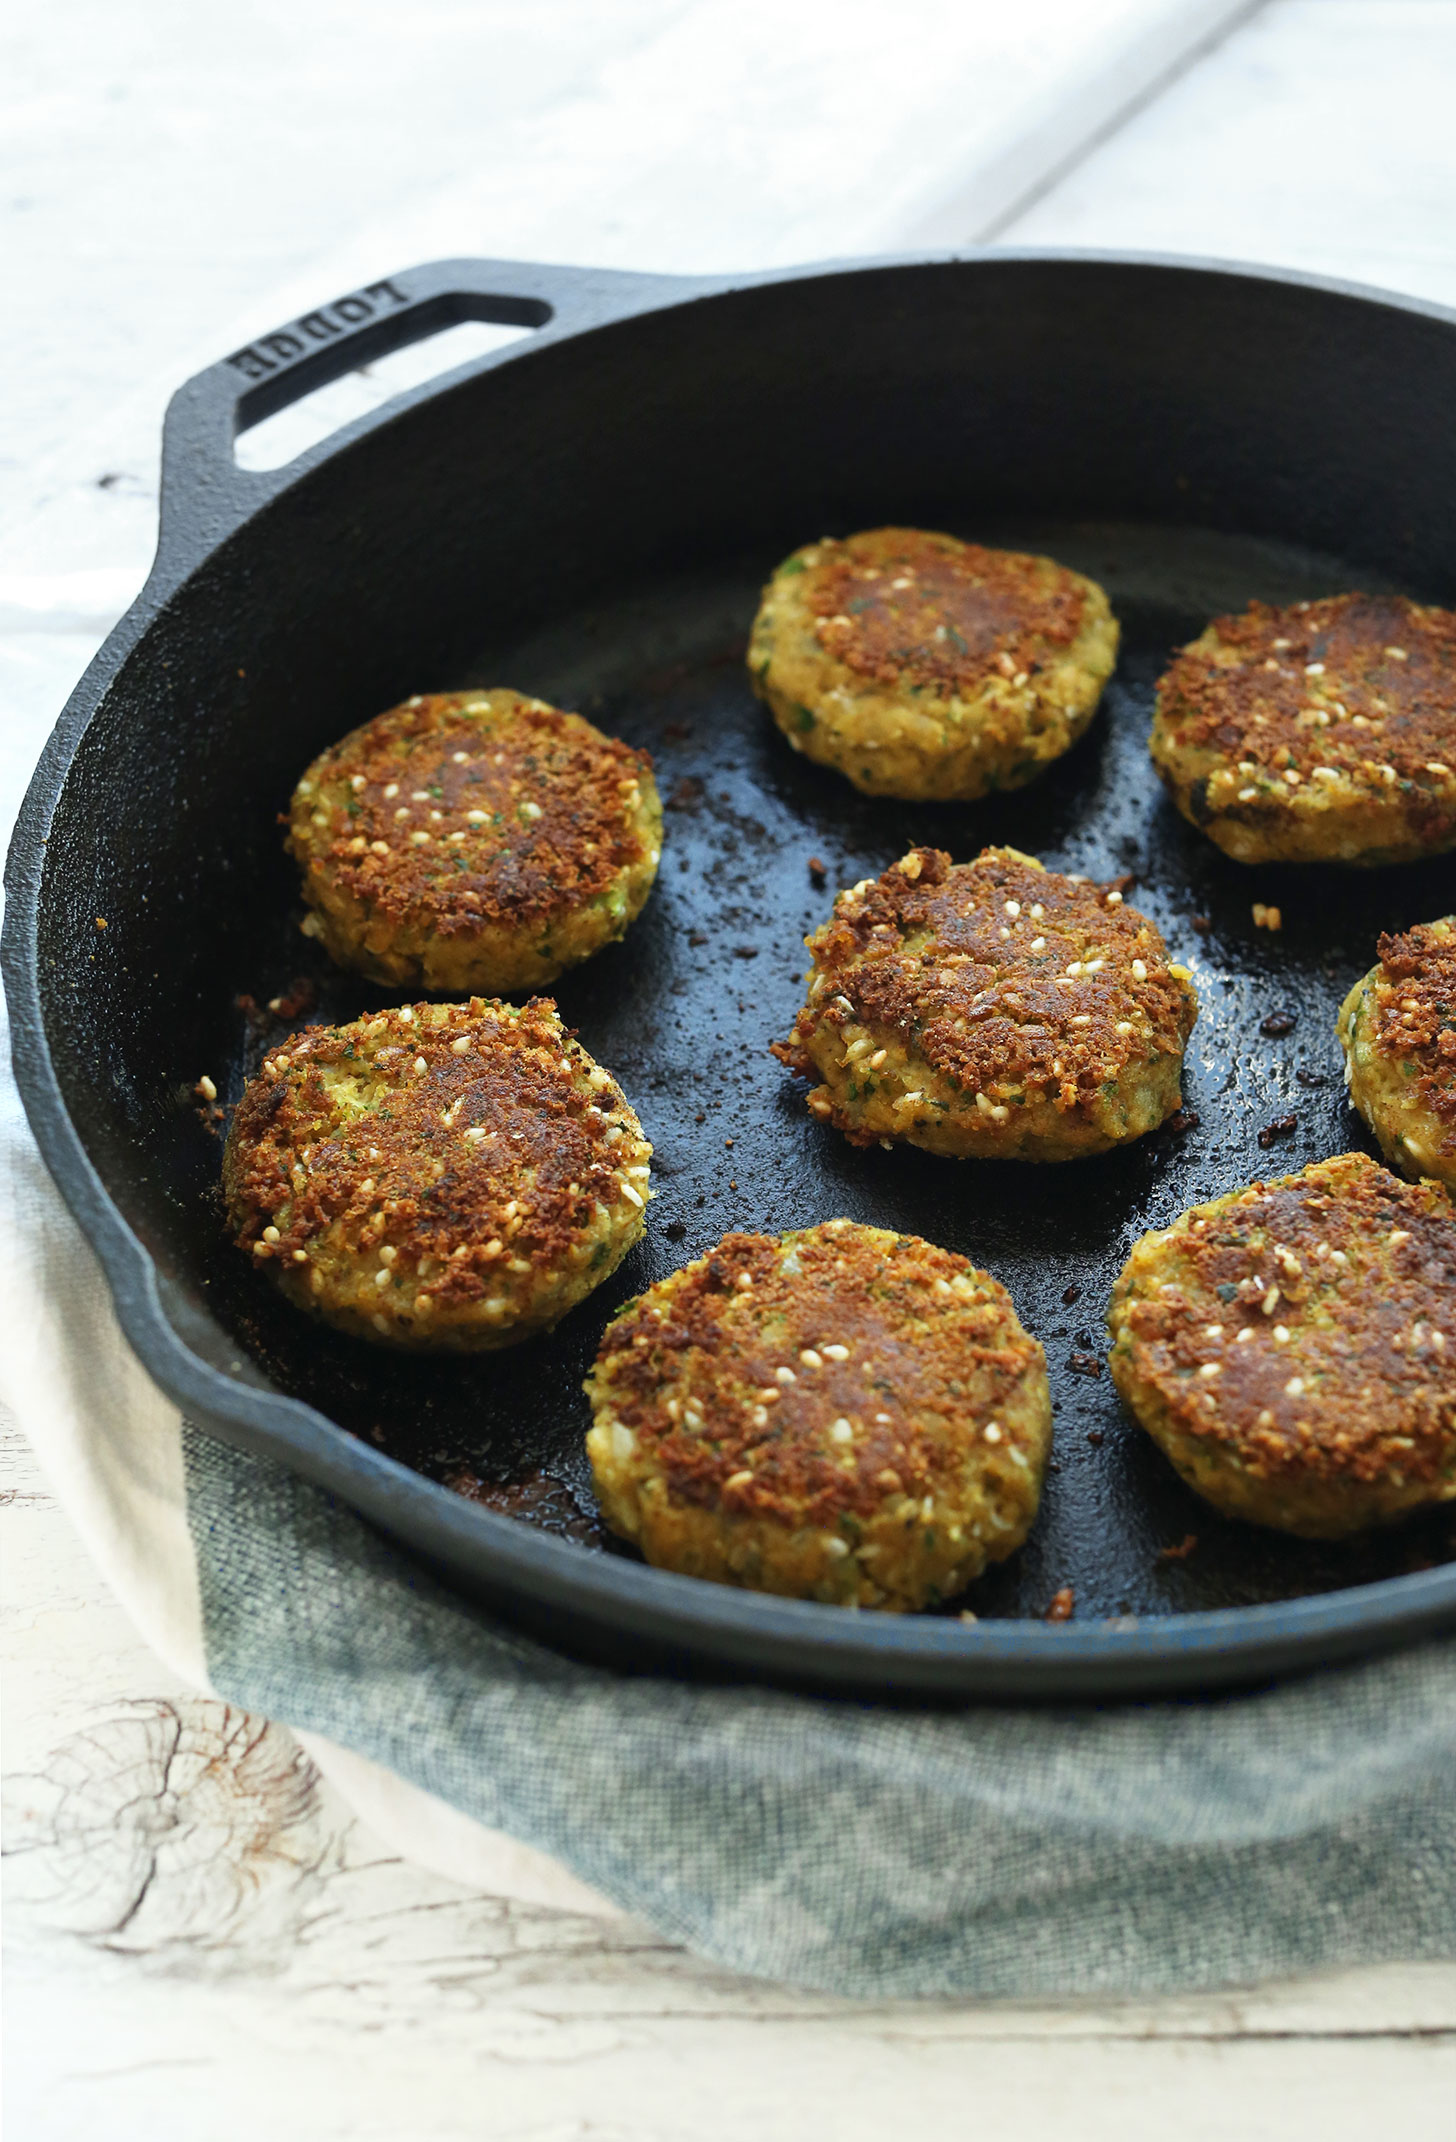 Cooking easy vegan falafel in a cast-iron skillet